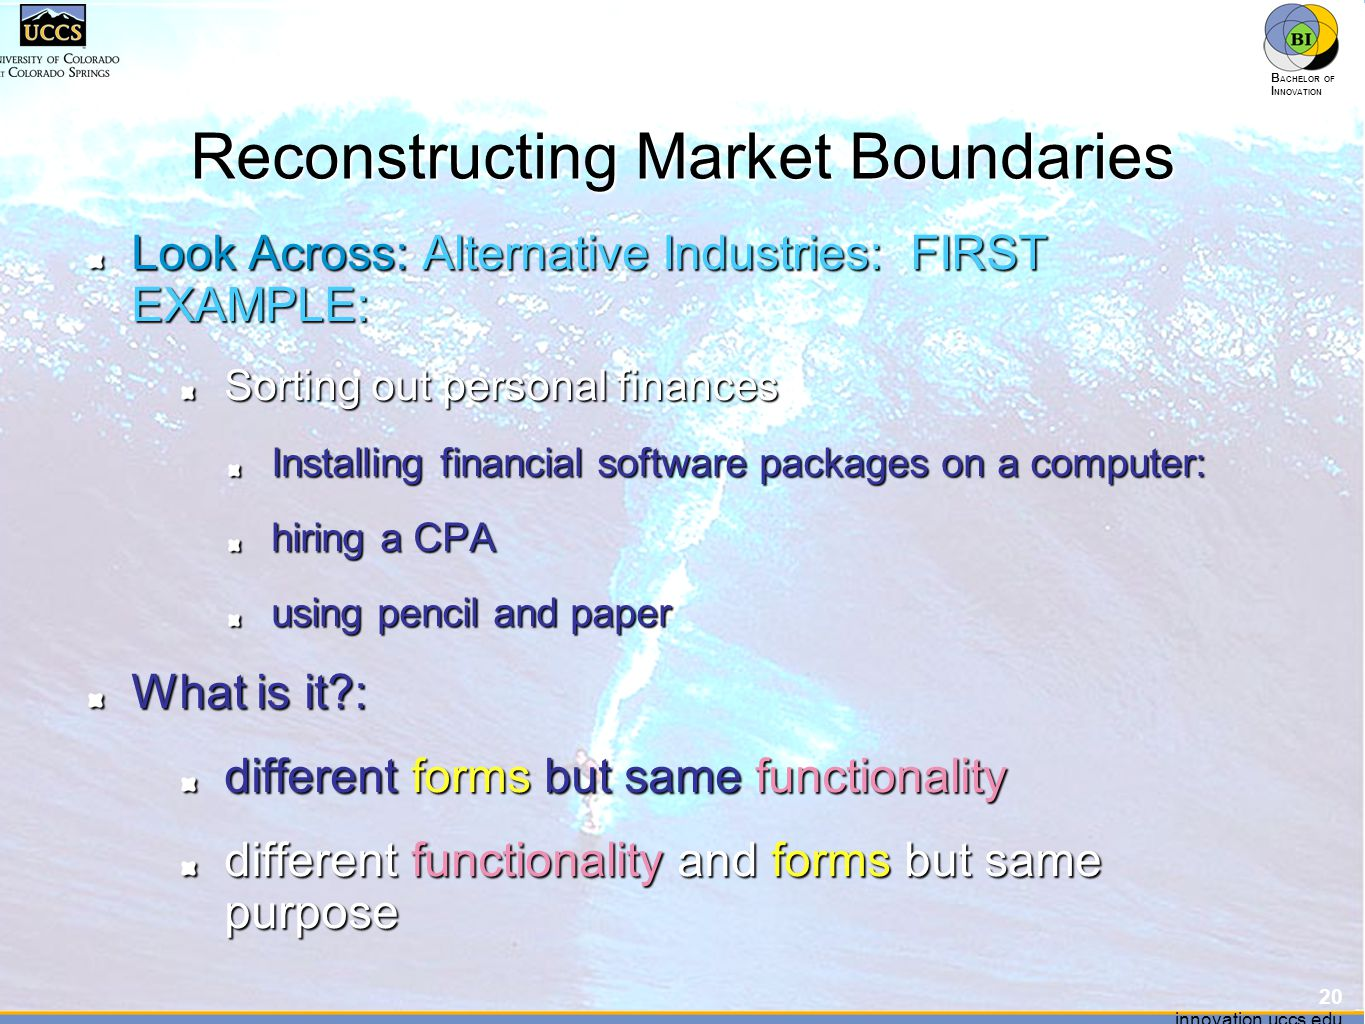 innovation.uccs.edu B ACHELOR OF I NNOVATION ™ innovation.uccs.edu B ACHELOR OF I NNOVATION ™ Reconstructing Market Boundaries Look Across: Alternative Industries: FIRST EXAMPLE: Sorting out personal finances Installing financial software packages on a computer: hiring a CPA using pencil and paper What is it : different forms but same functionality different functionality and forms but same purpose 20